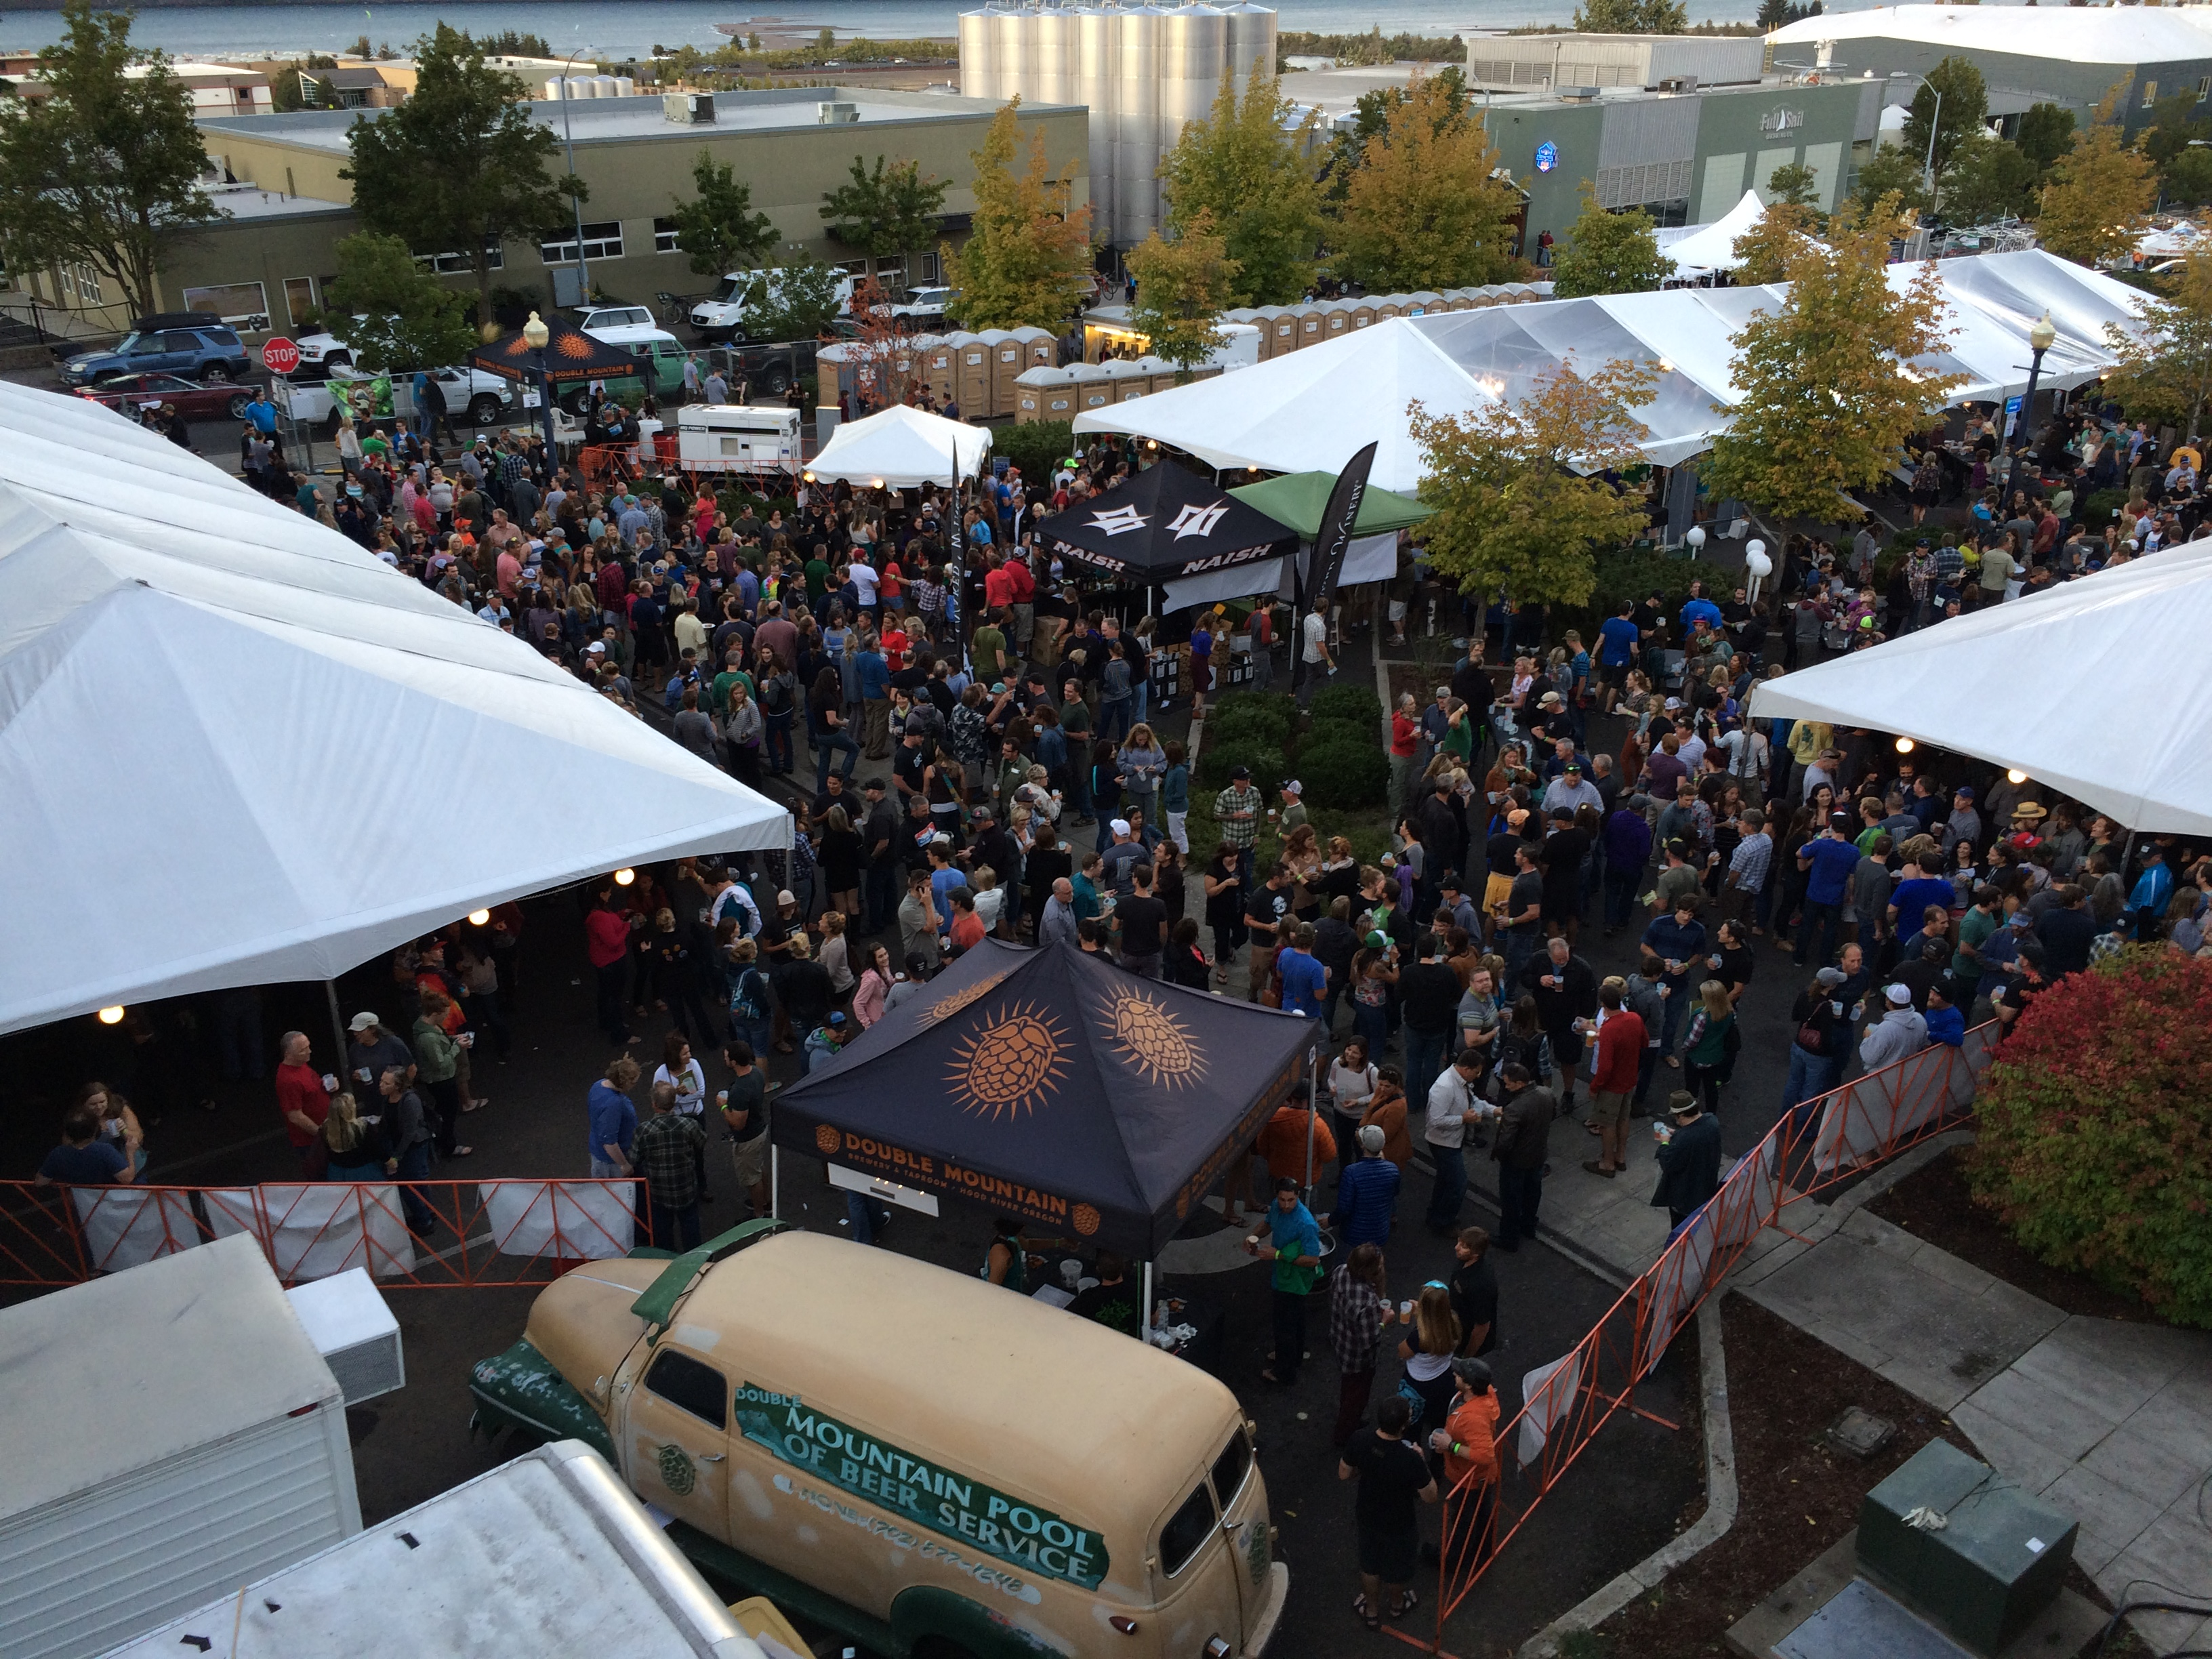 An aerial view of the Hood River Hops Fest